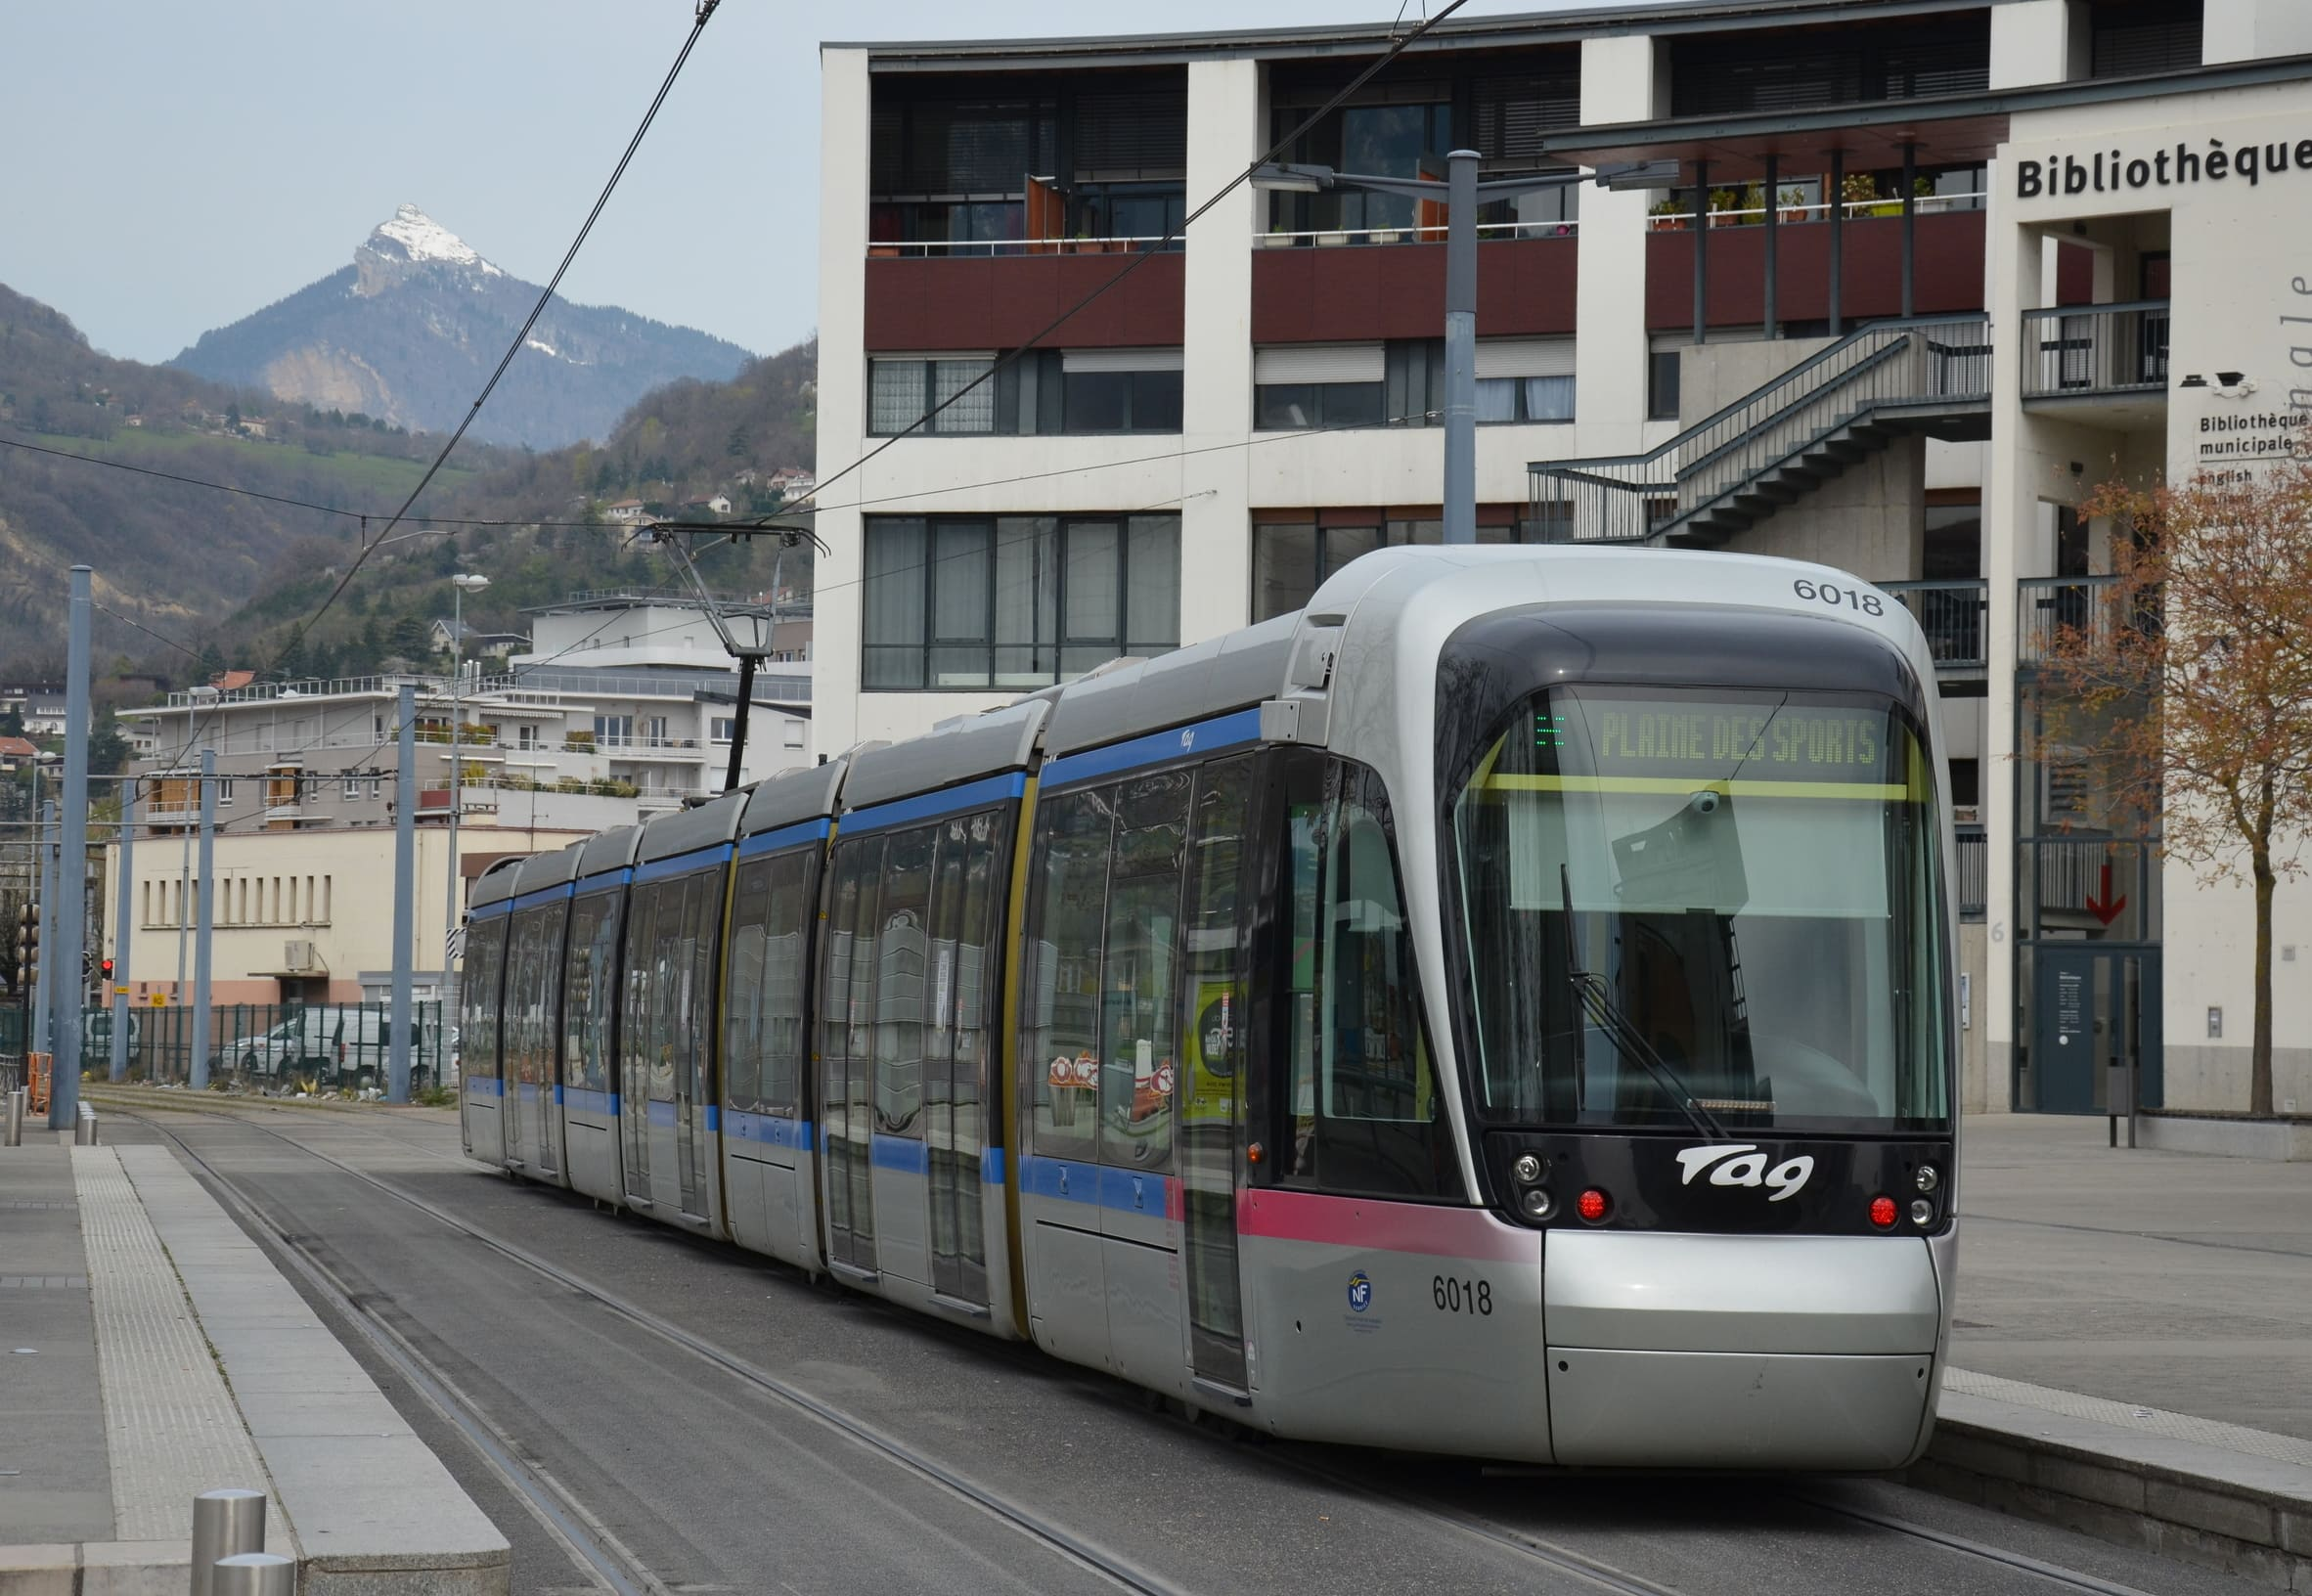 Bibliotheque Grenoble Tramways De Grenoble Tag Mobilys